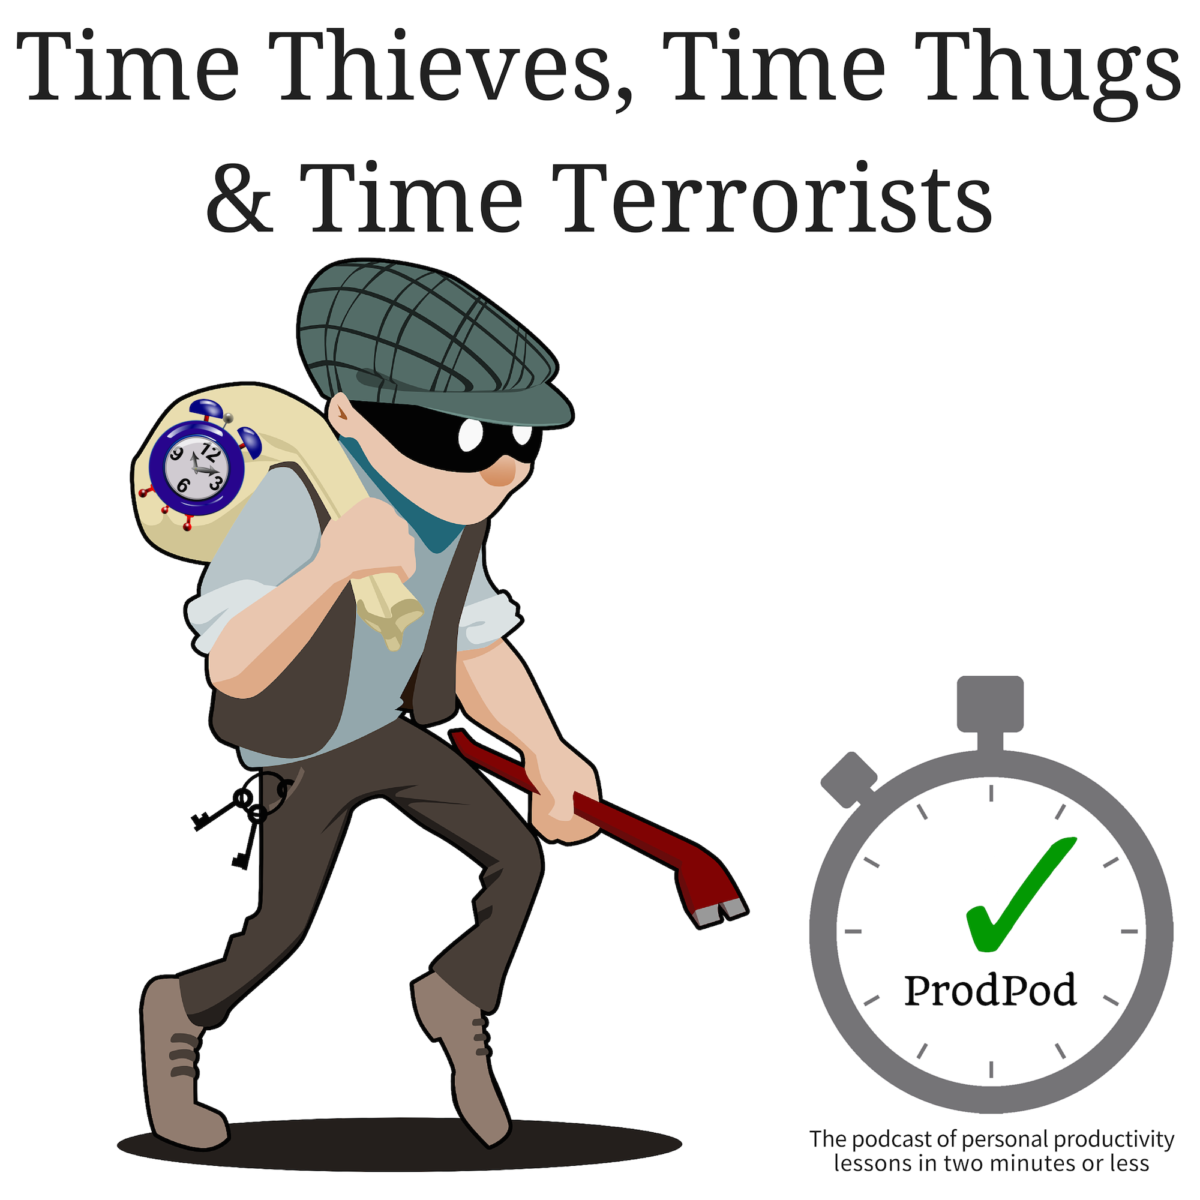 Time Thieves Time Thugs and Time Terrorists